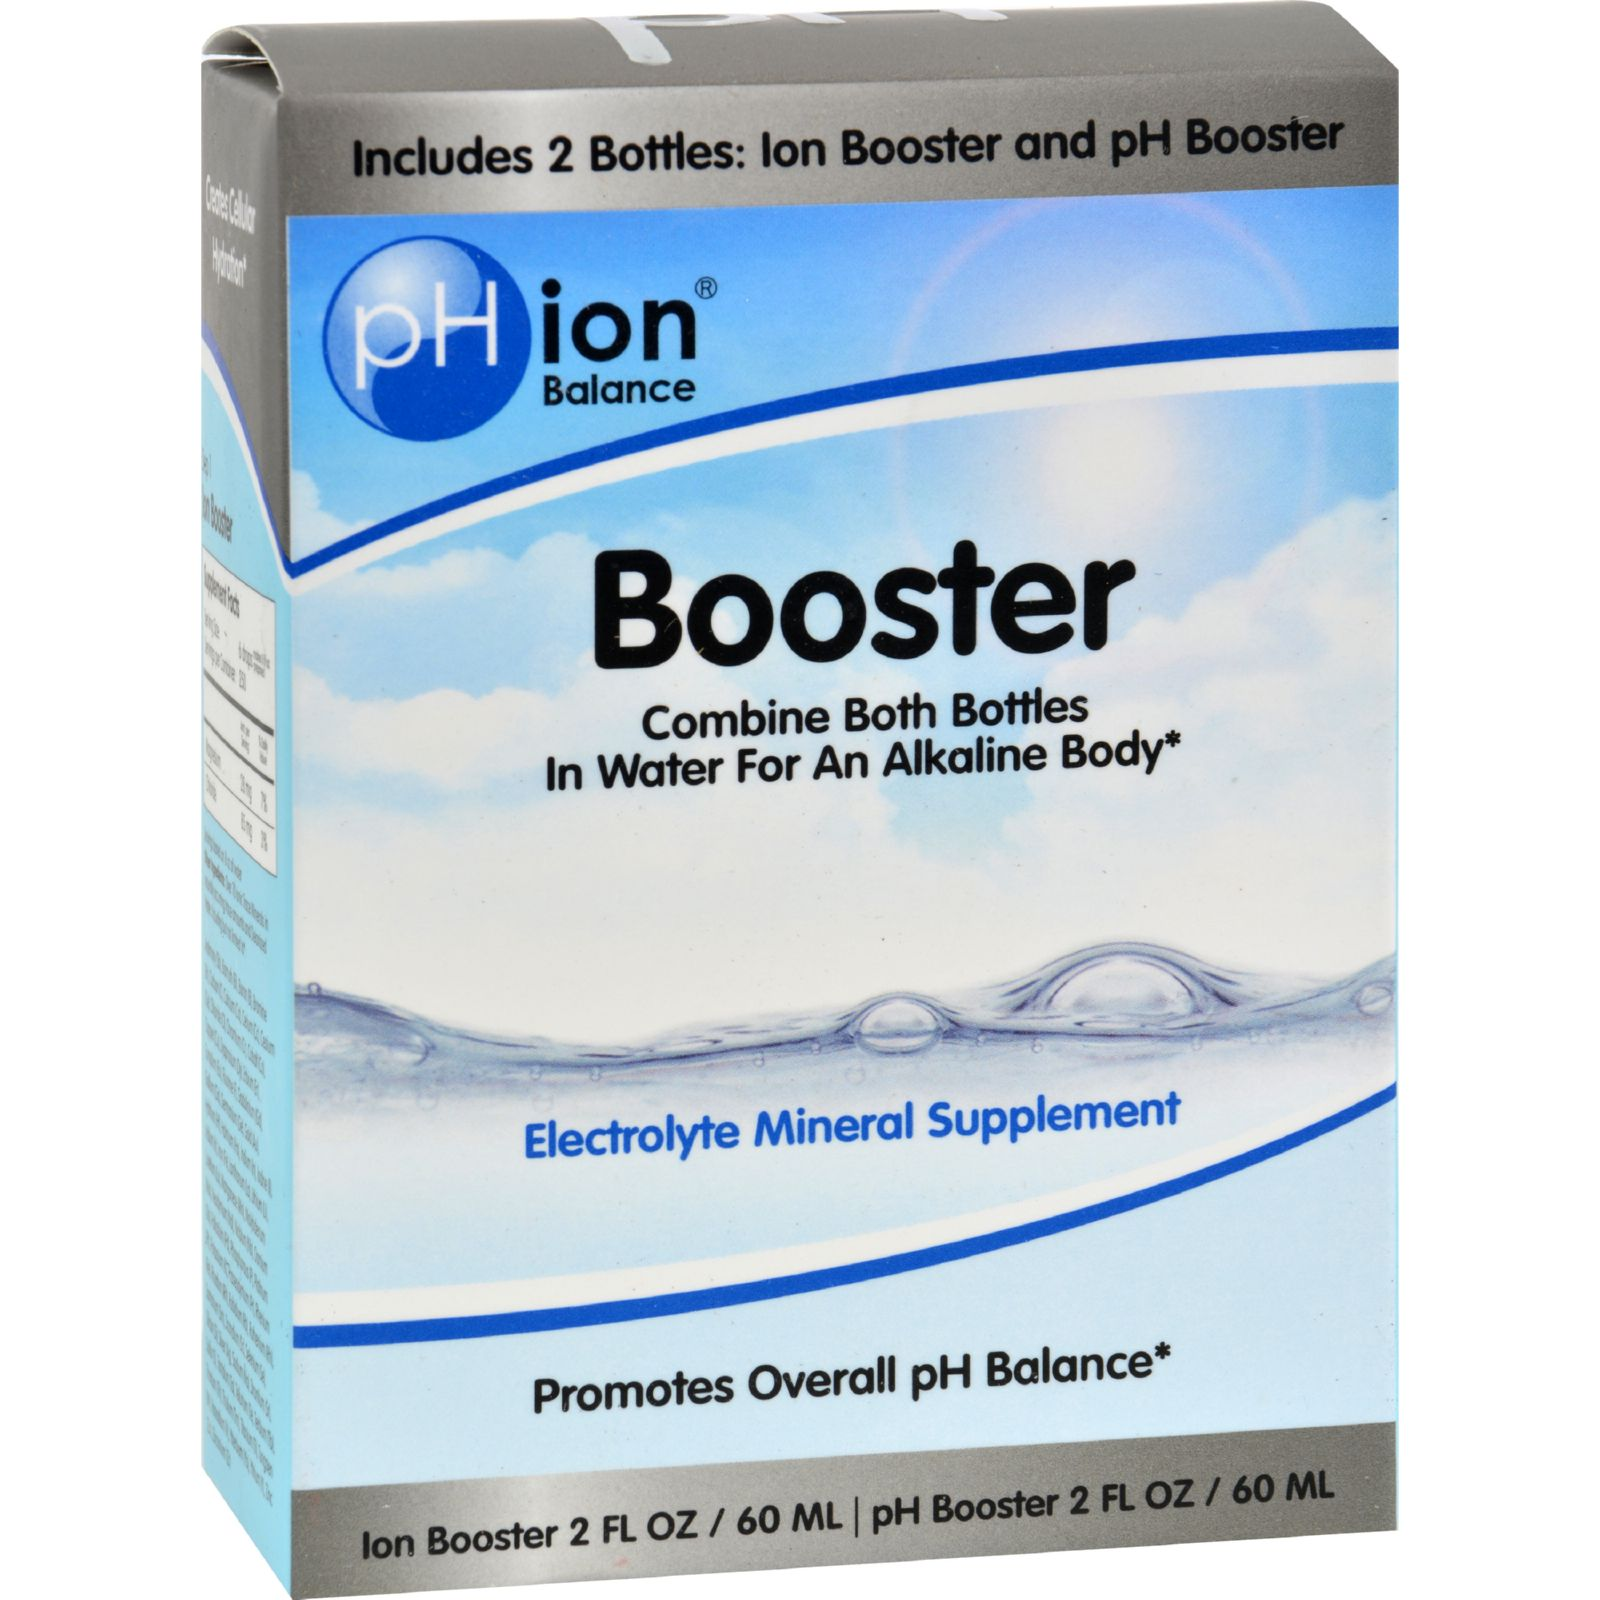 Phion Balance Booster Electrolyte Mineral Supplement - 2/2 Oz